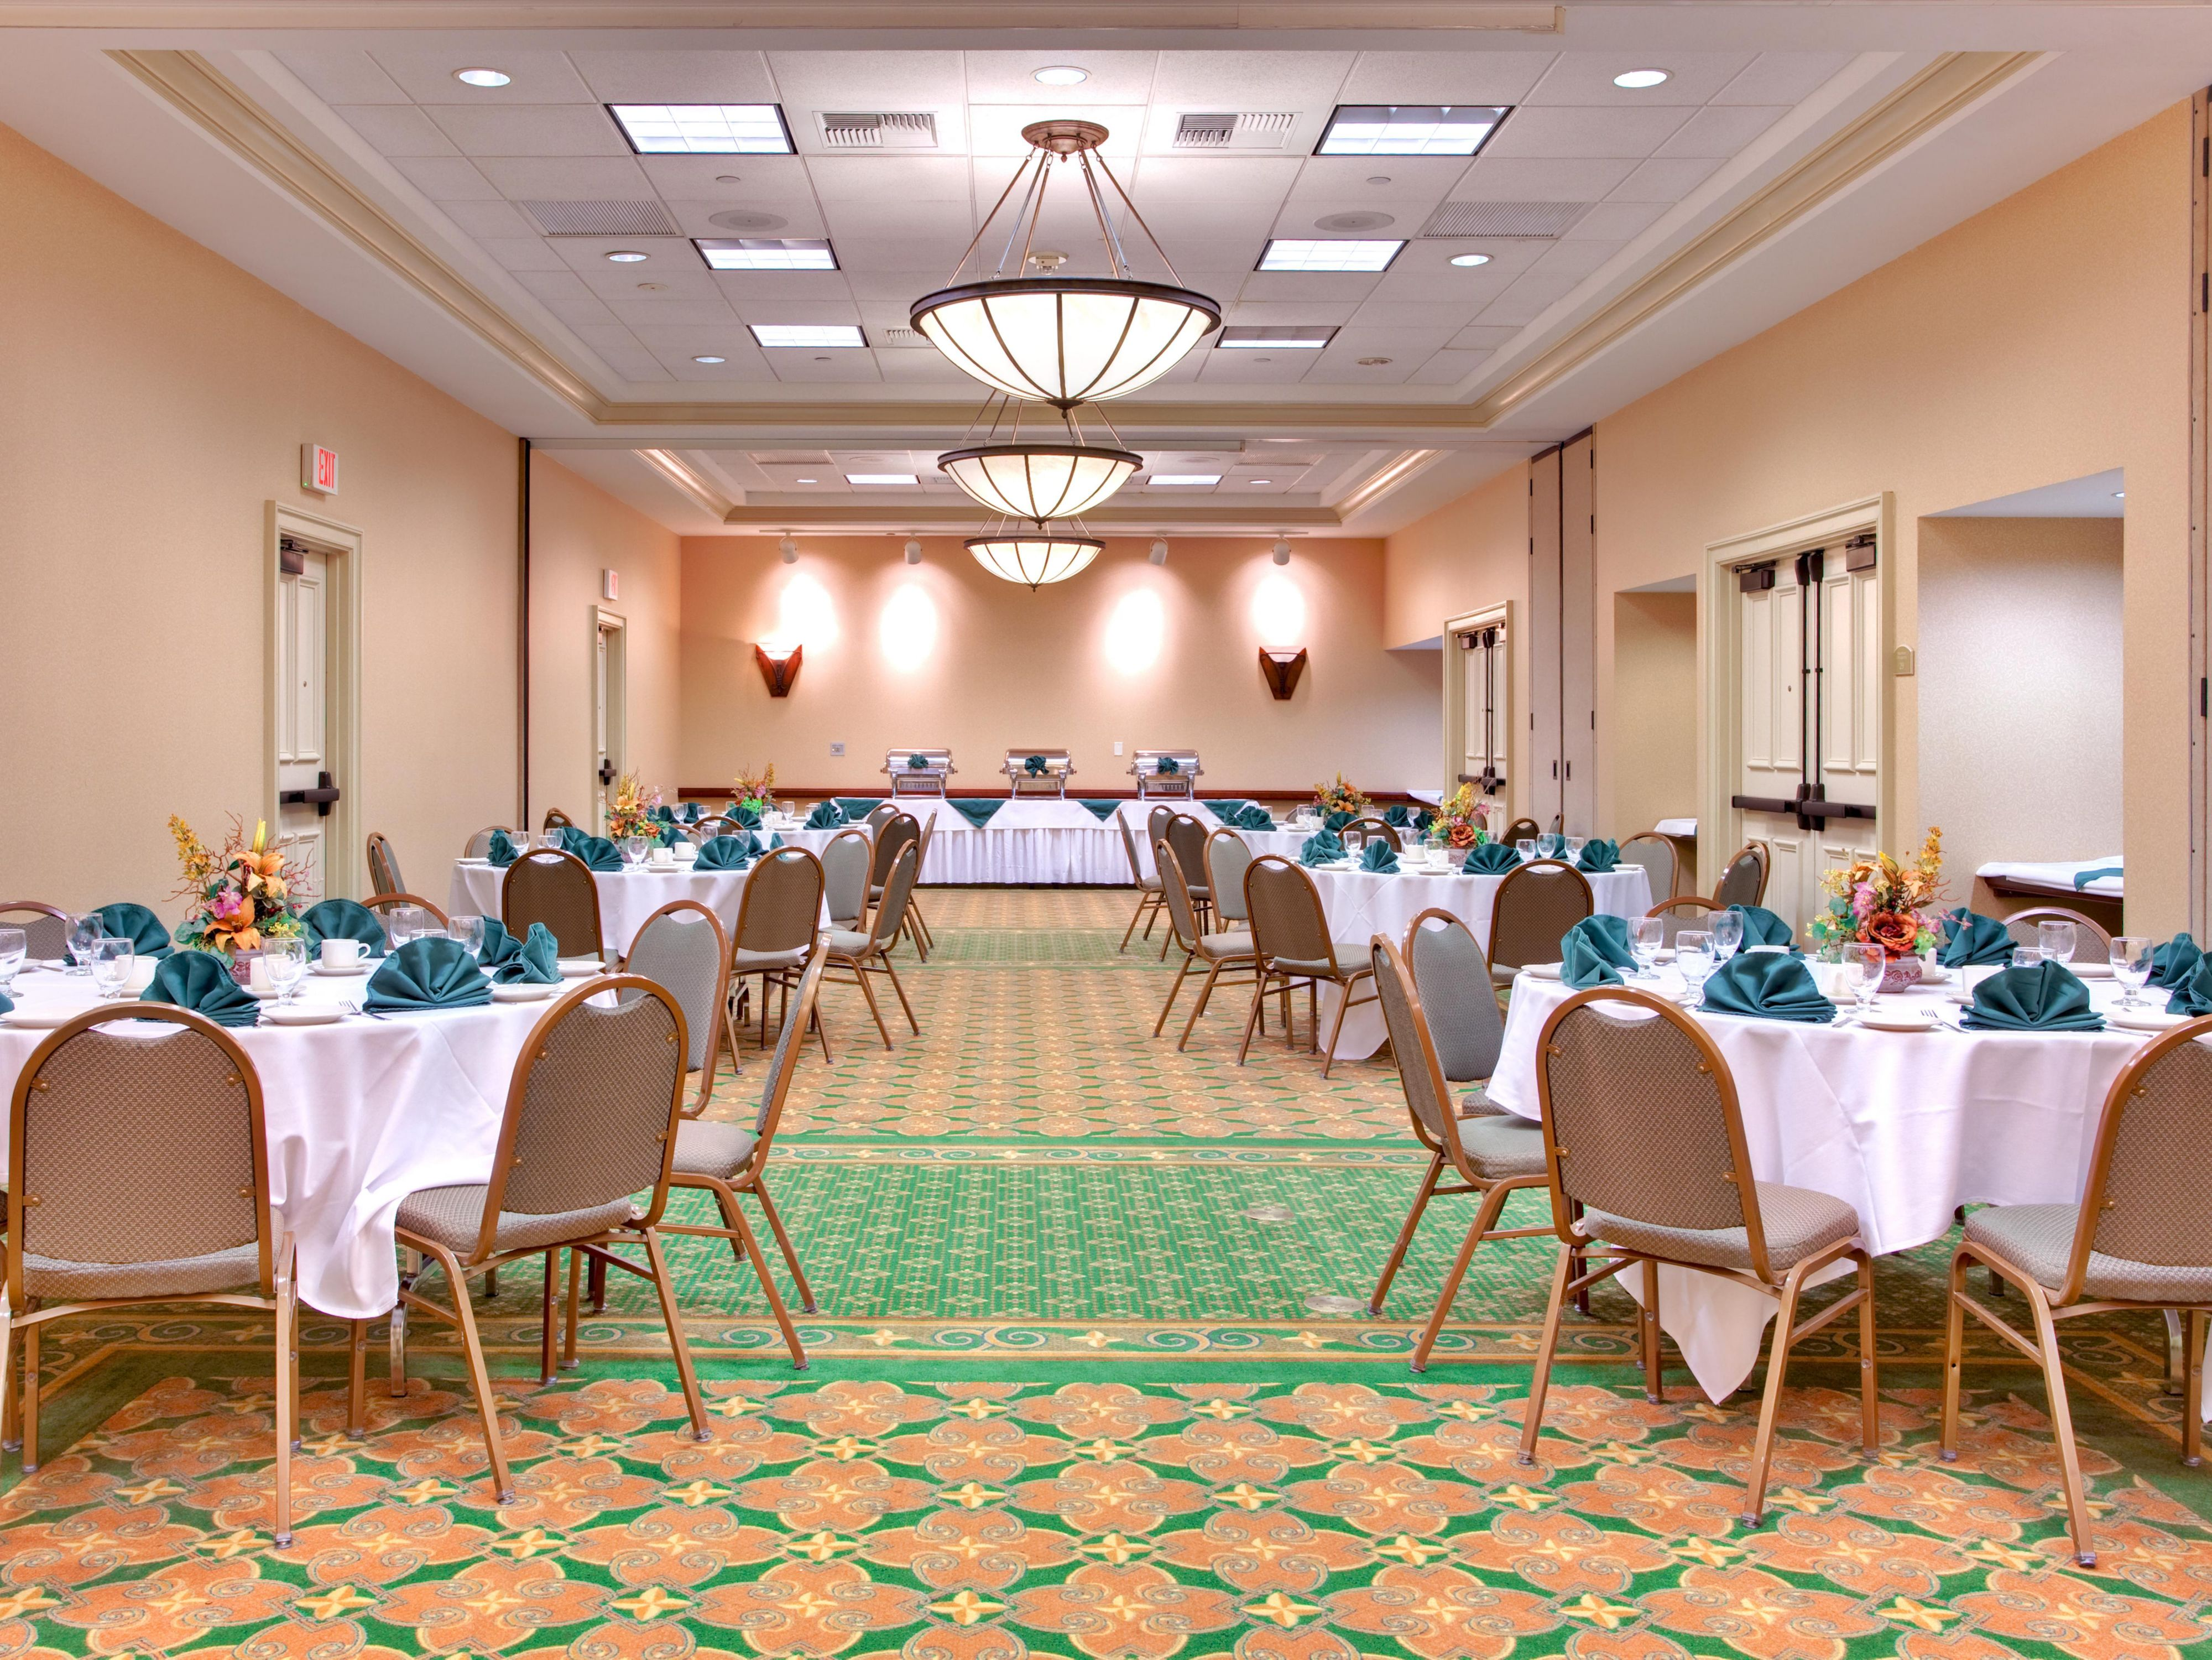 Pacifica Ballroom 1408 sq feet and events for up to 100 people